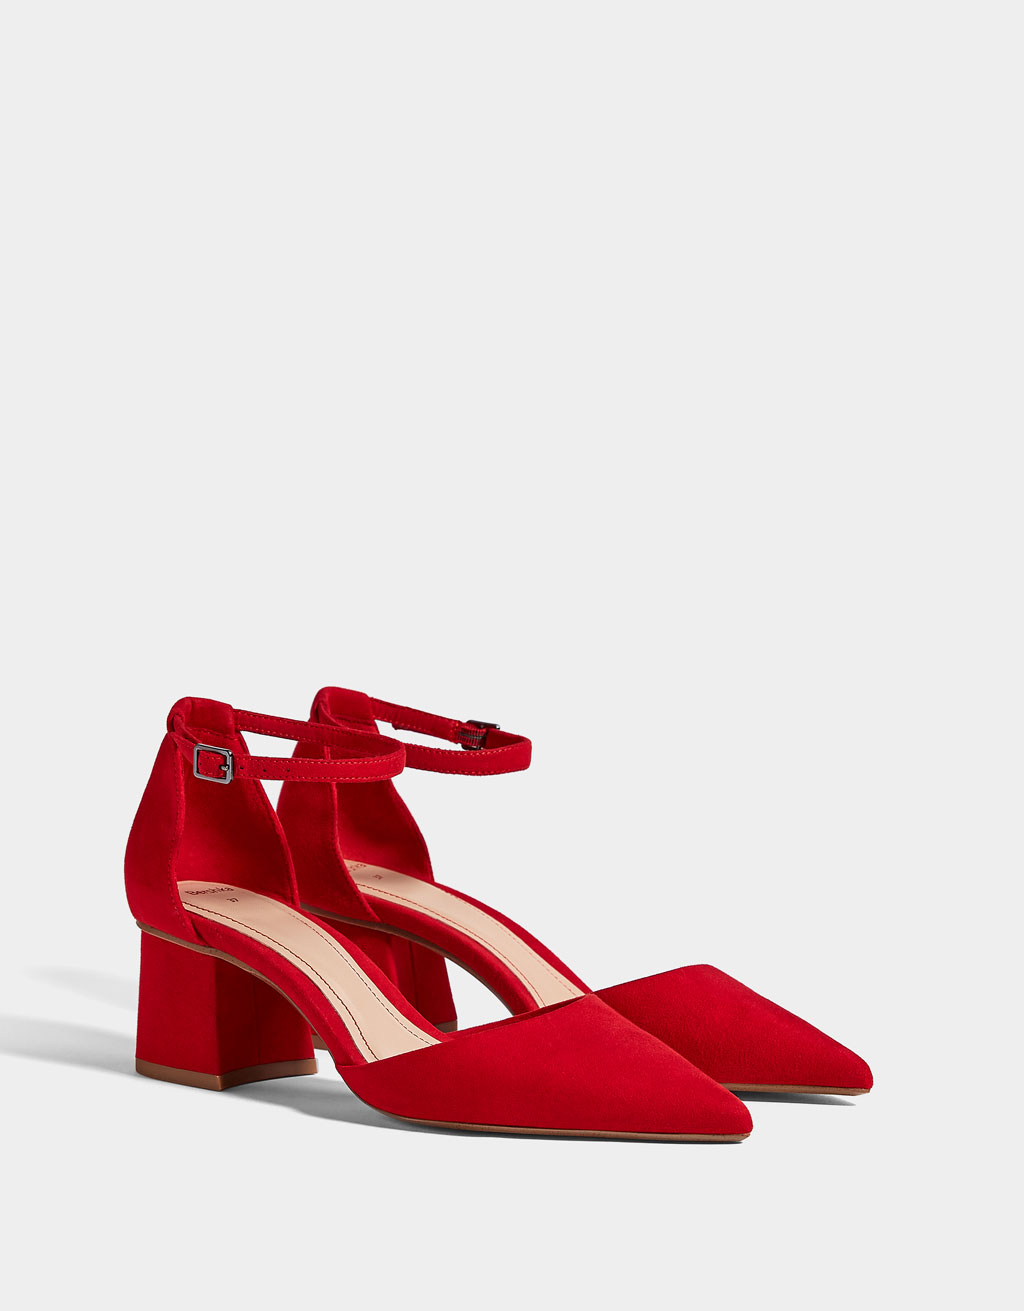 Red mid-heel shoes